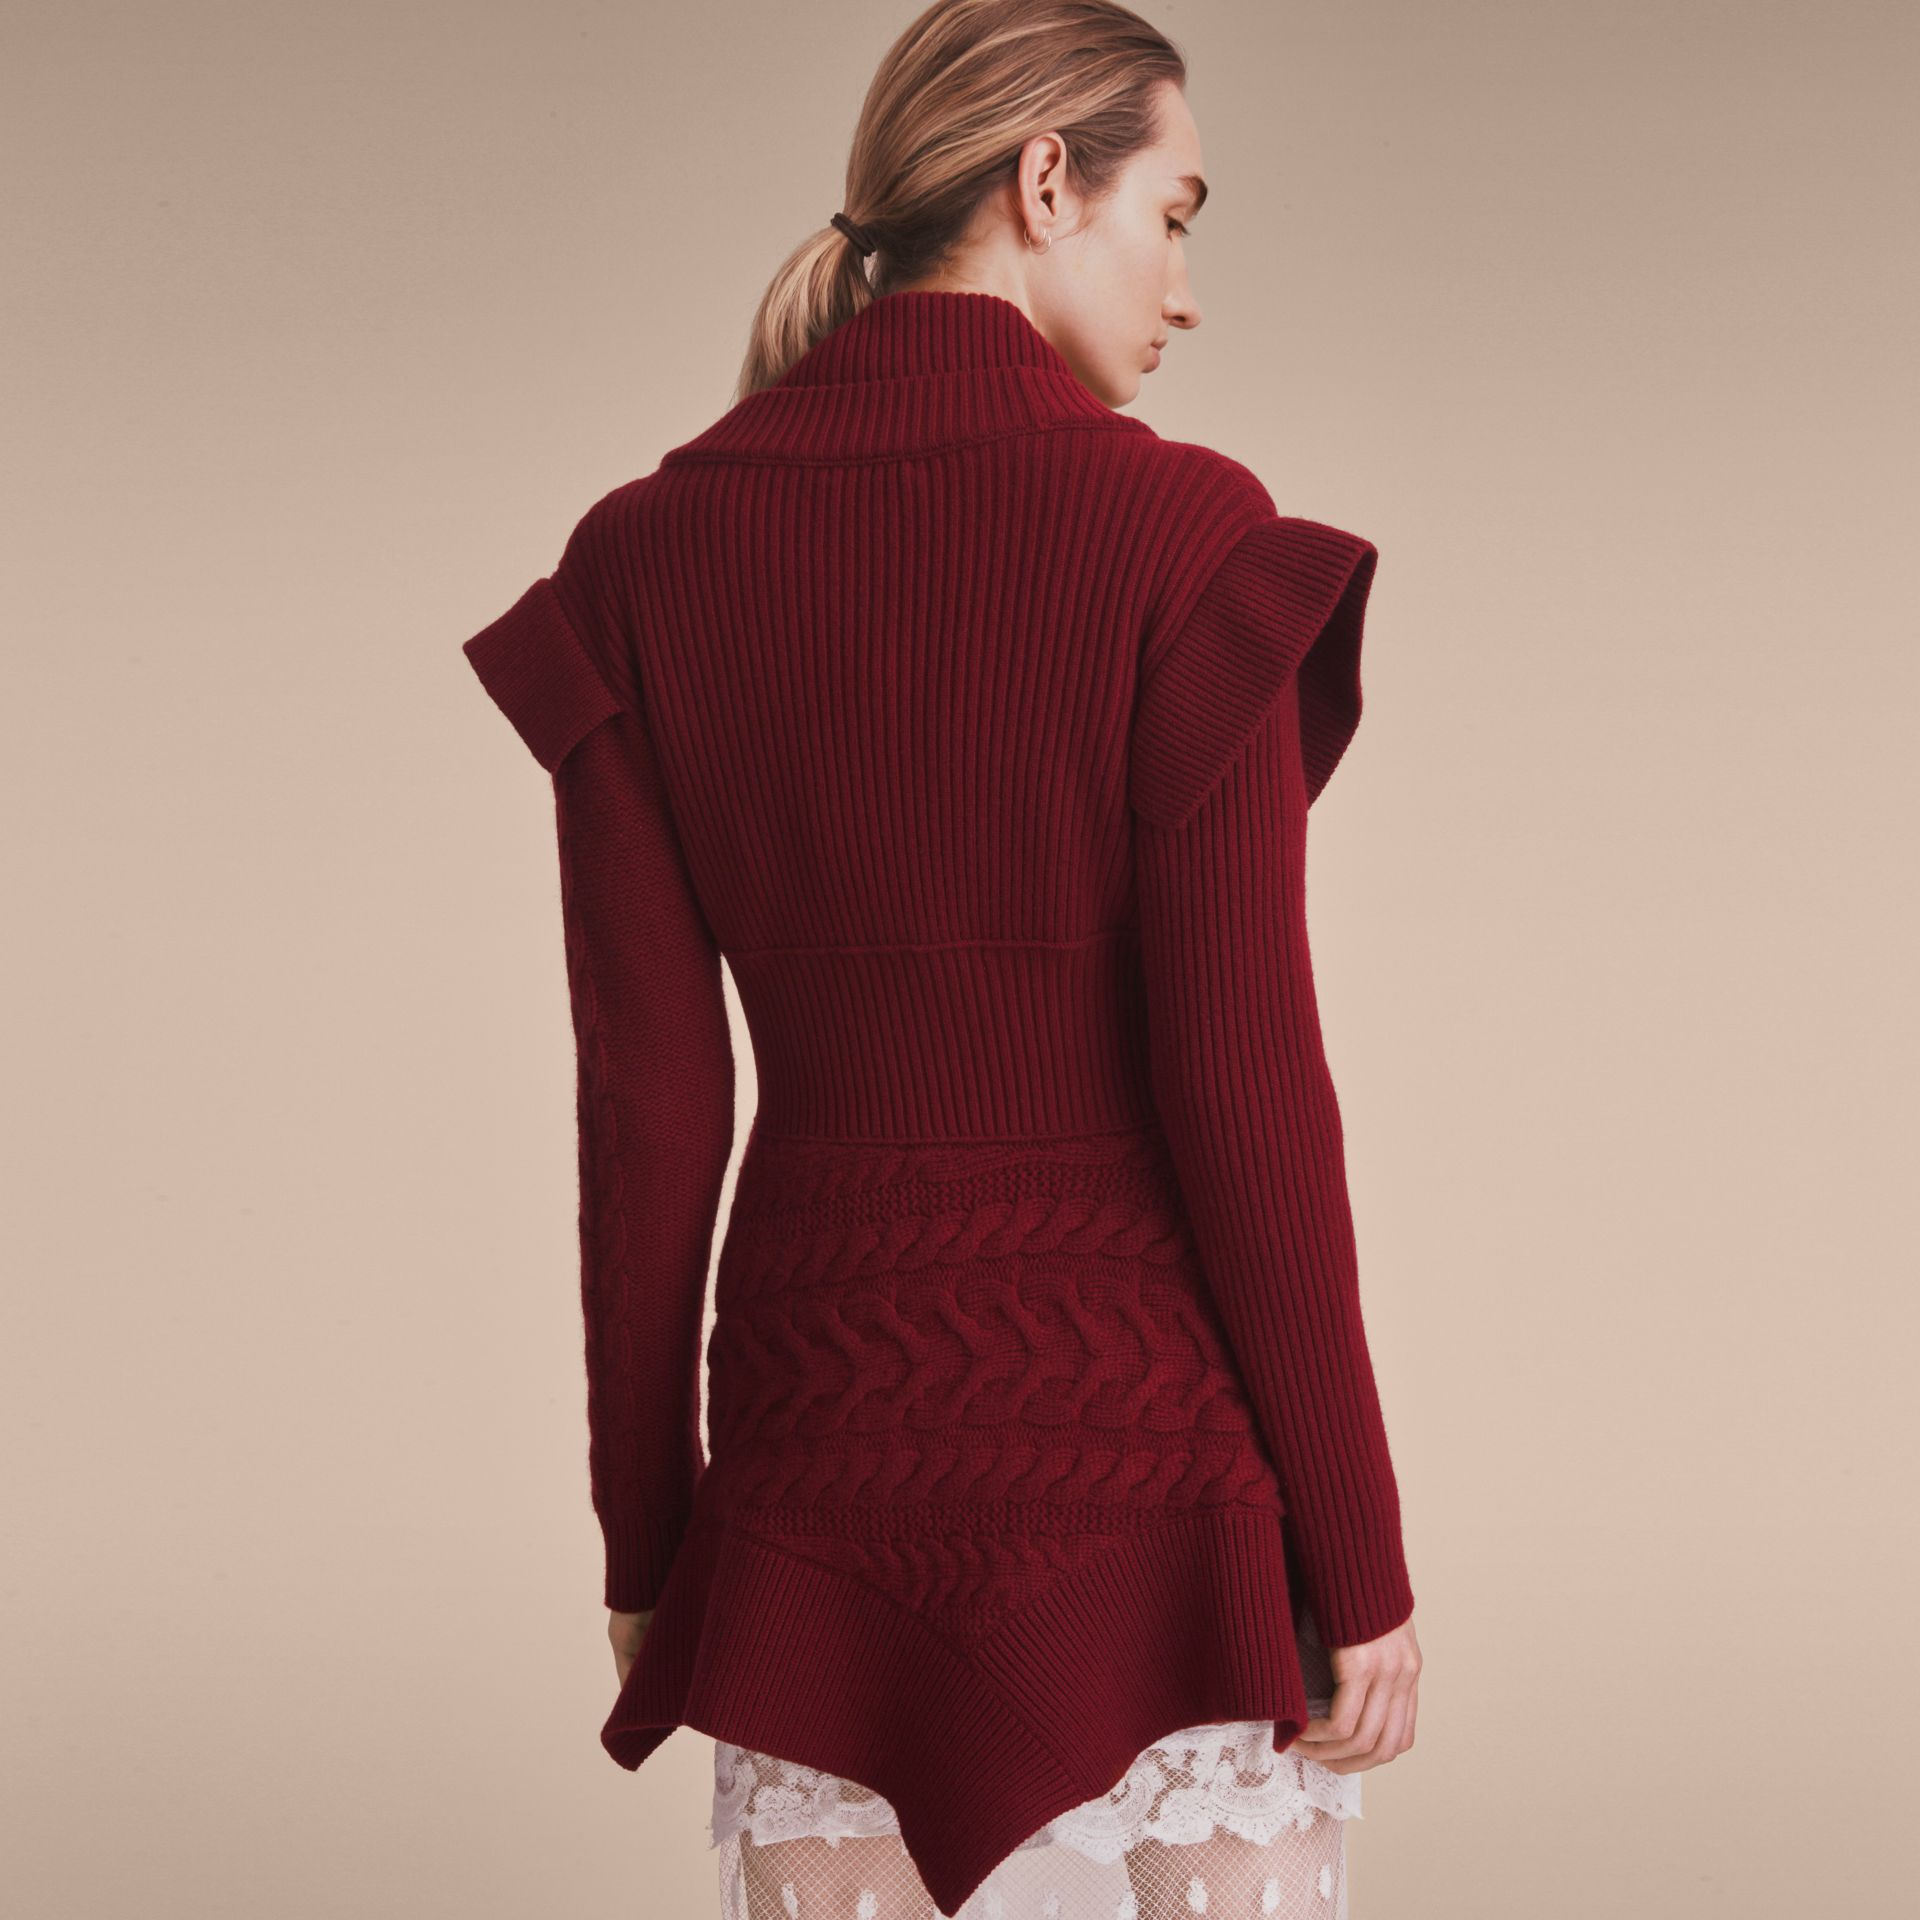 Knitted Wool Cashmere Military-inspired Jacket in Bordeaux - Women | Burberry Australia - gallery image 3